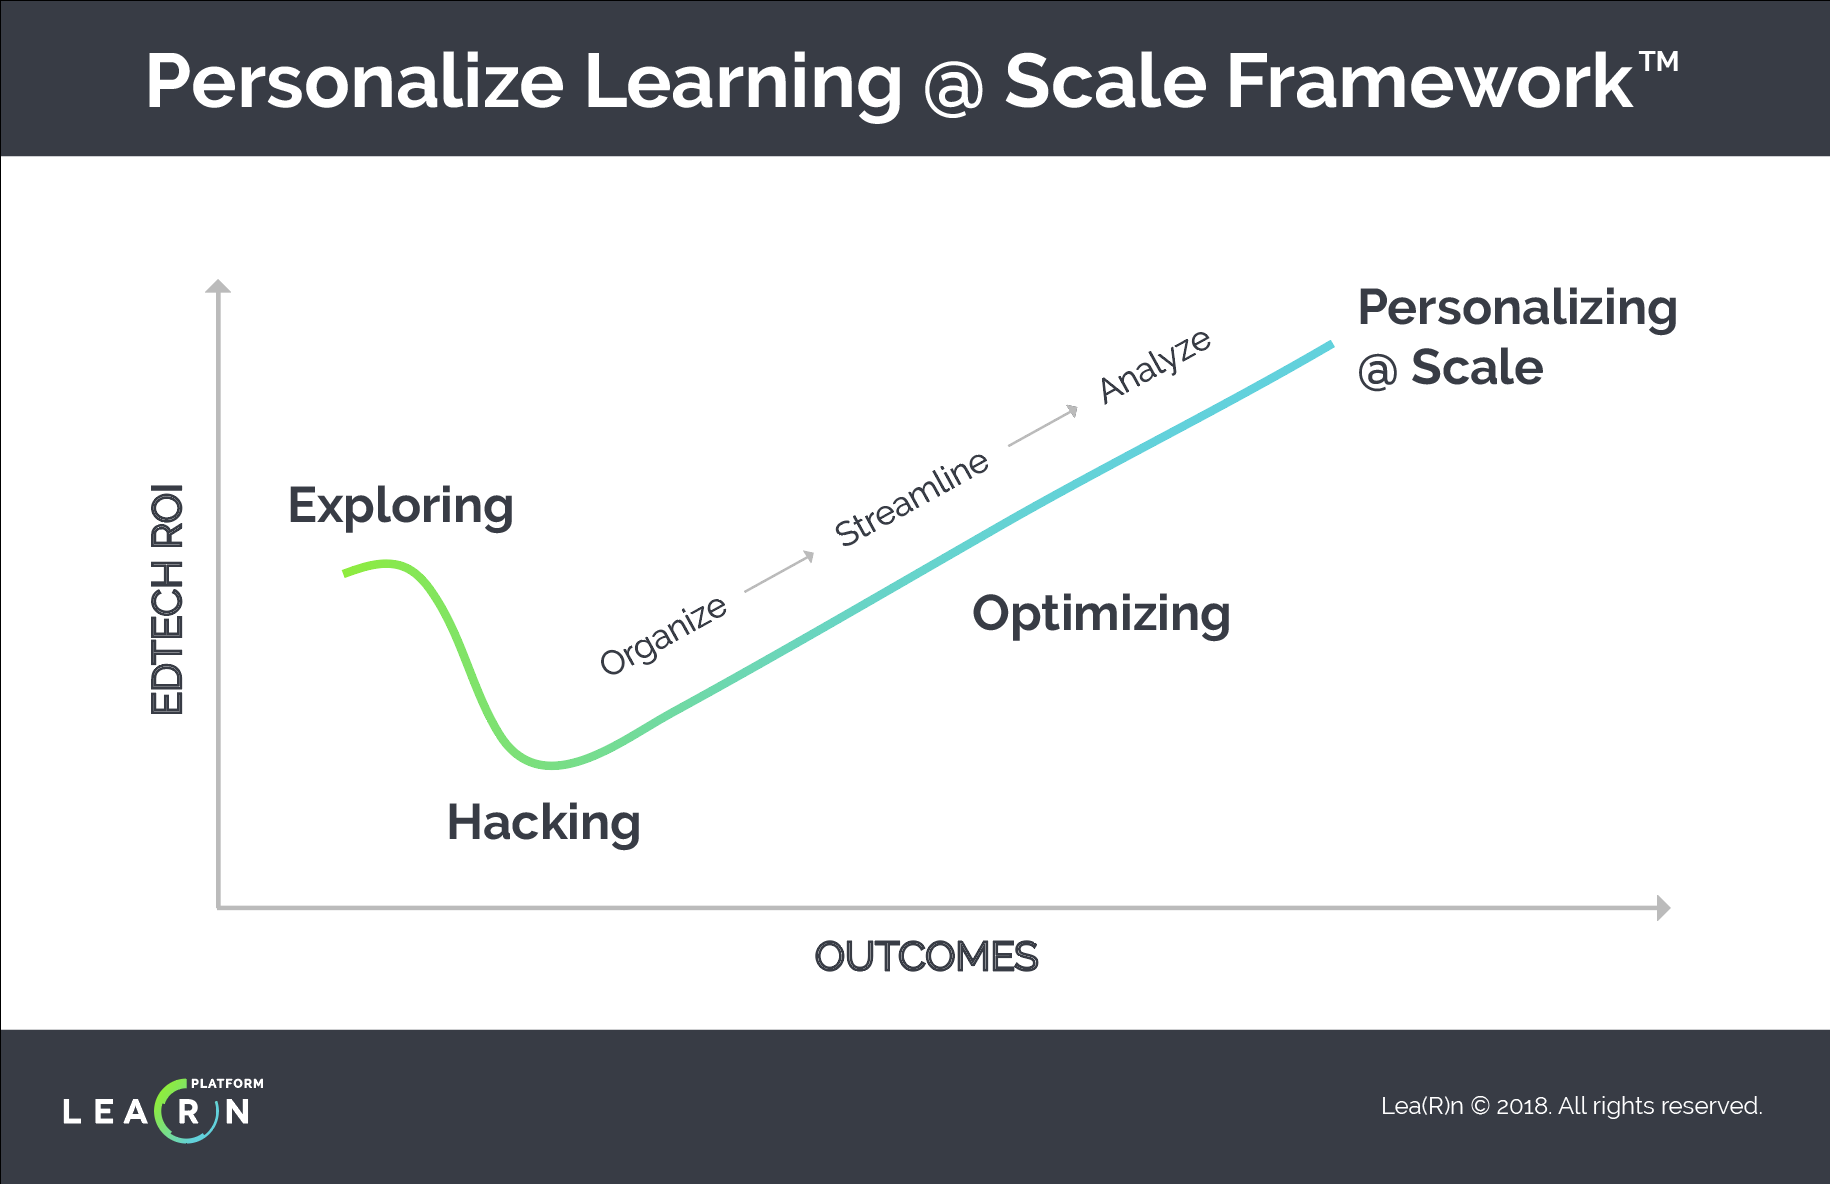 Personalize Learning @ Scale